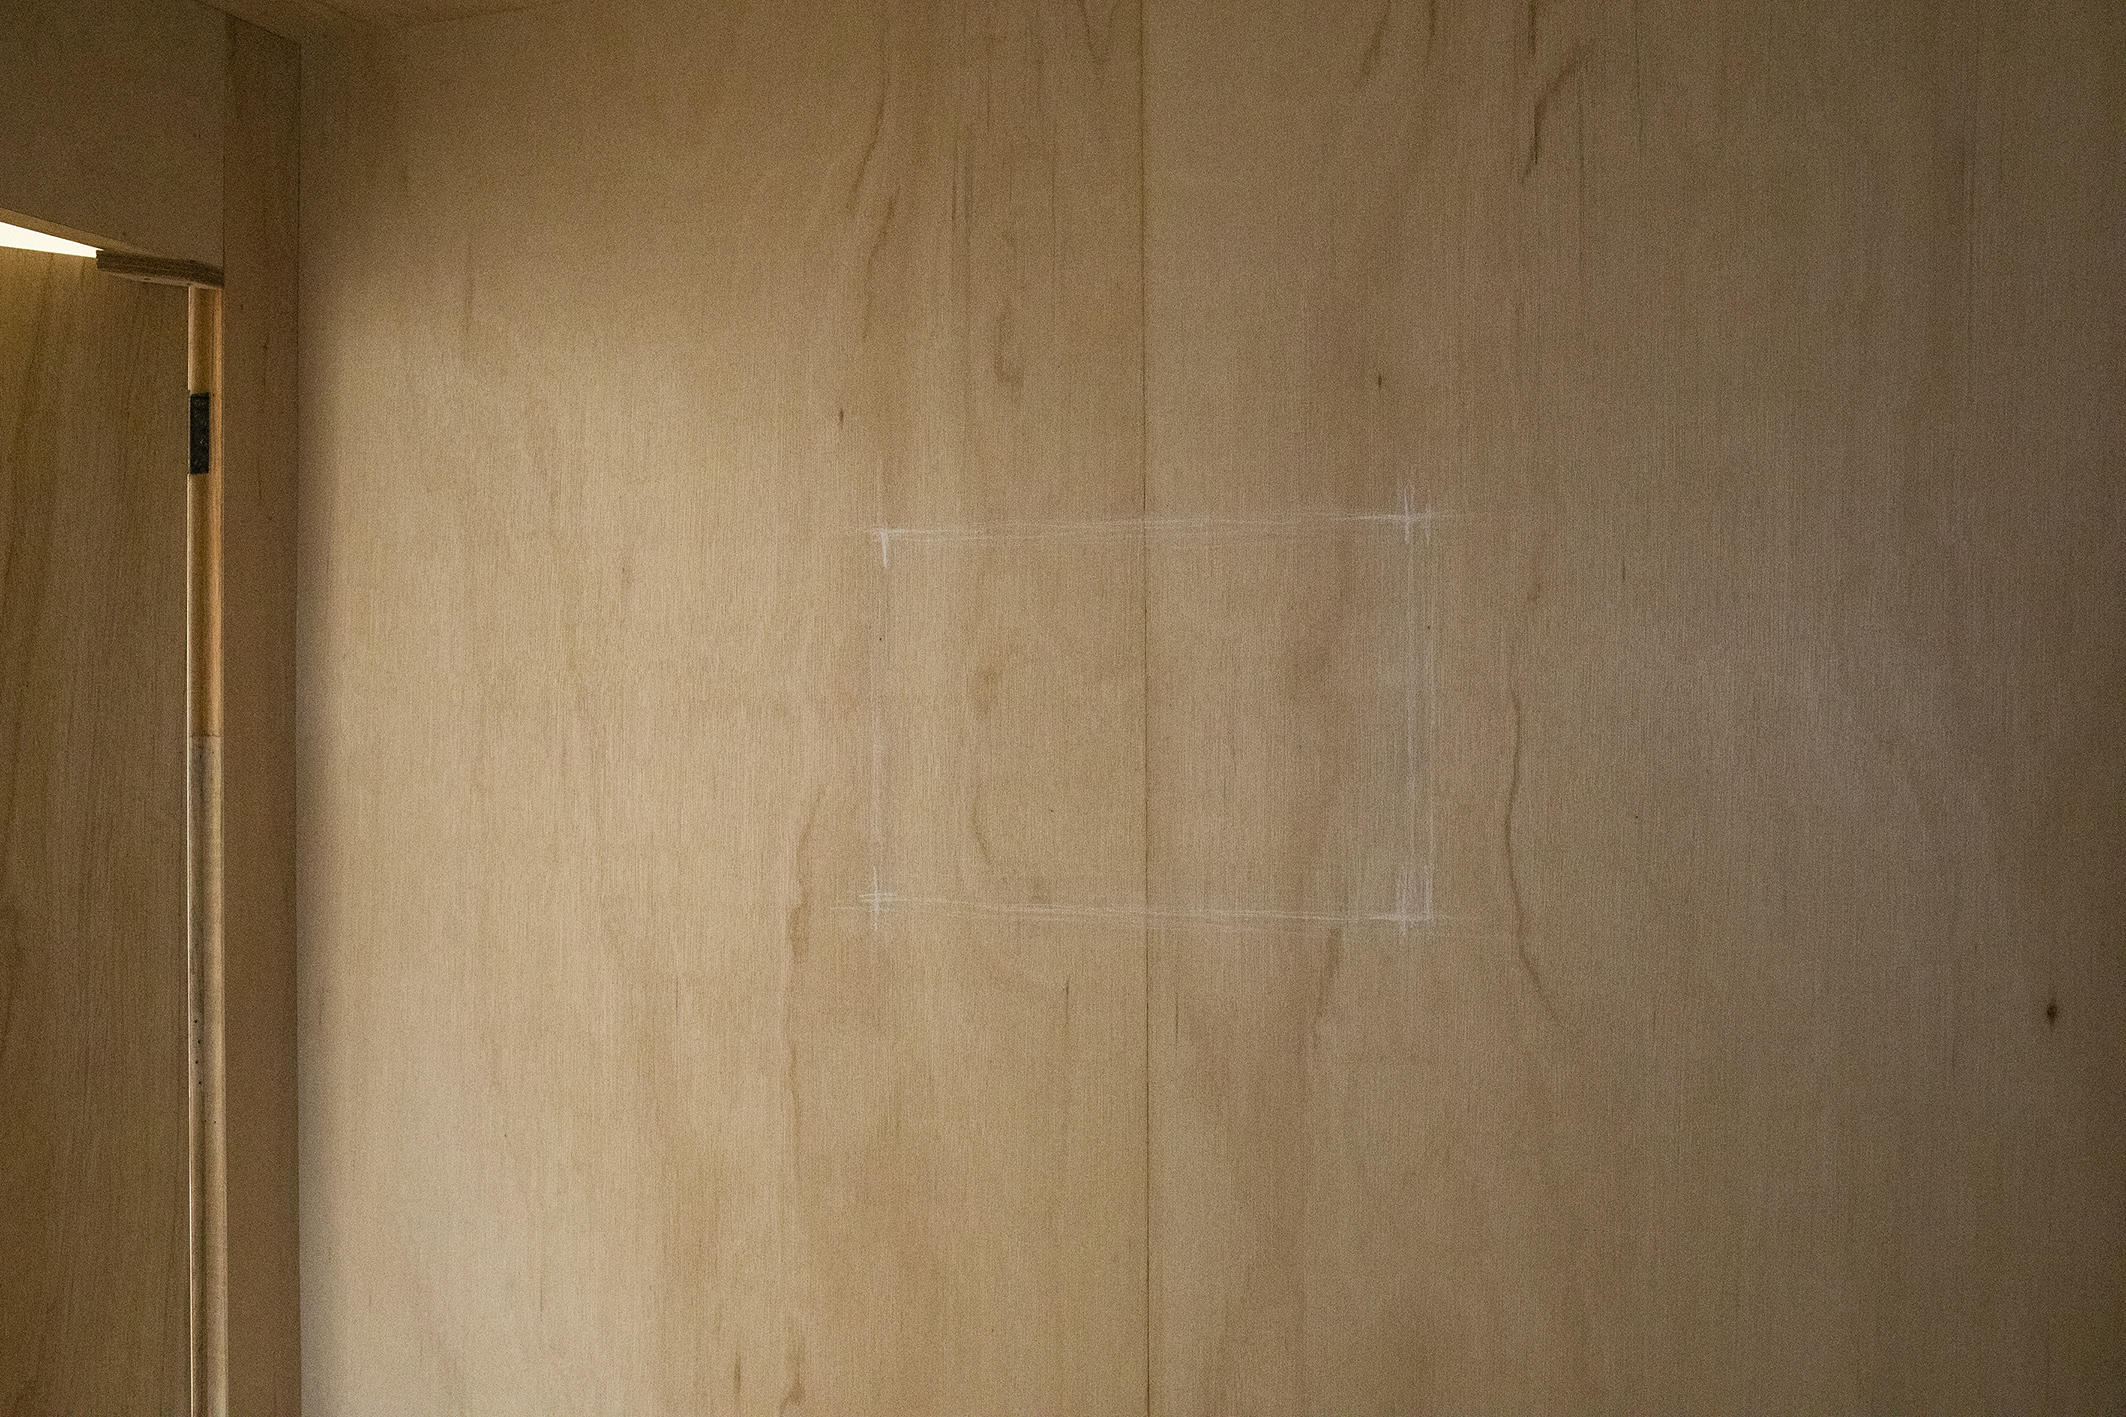 Nowhere, Site specific (chalk), Dimensions variable, 2021